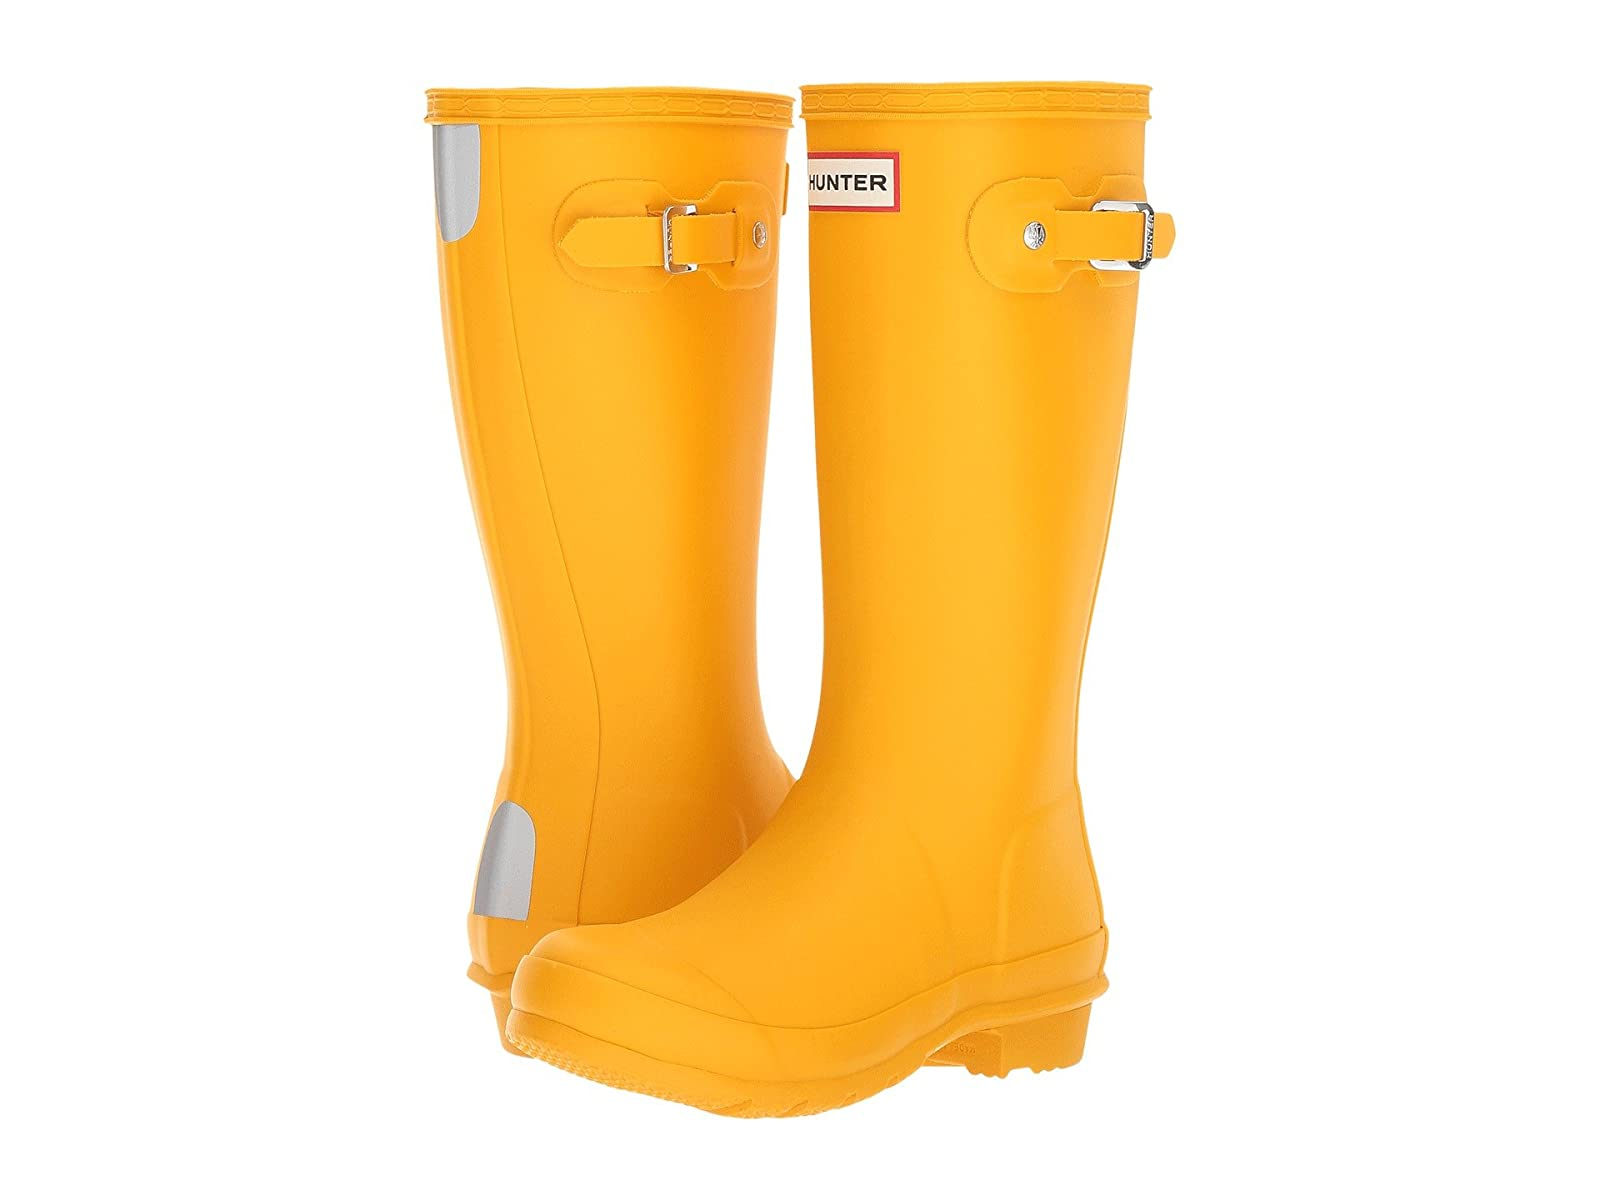 Hunter Kids Original Kids' Classic Rain Boot (Little Kid/Big Kid)Affordable and distinctive shoes